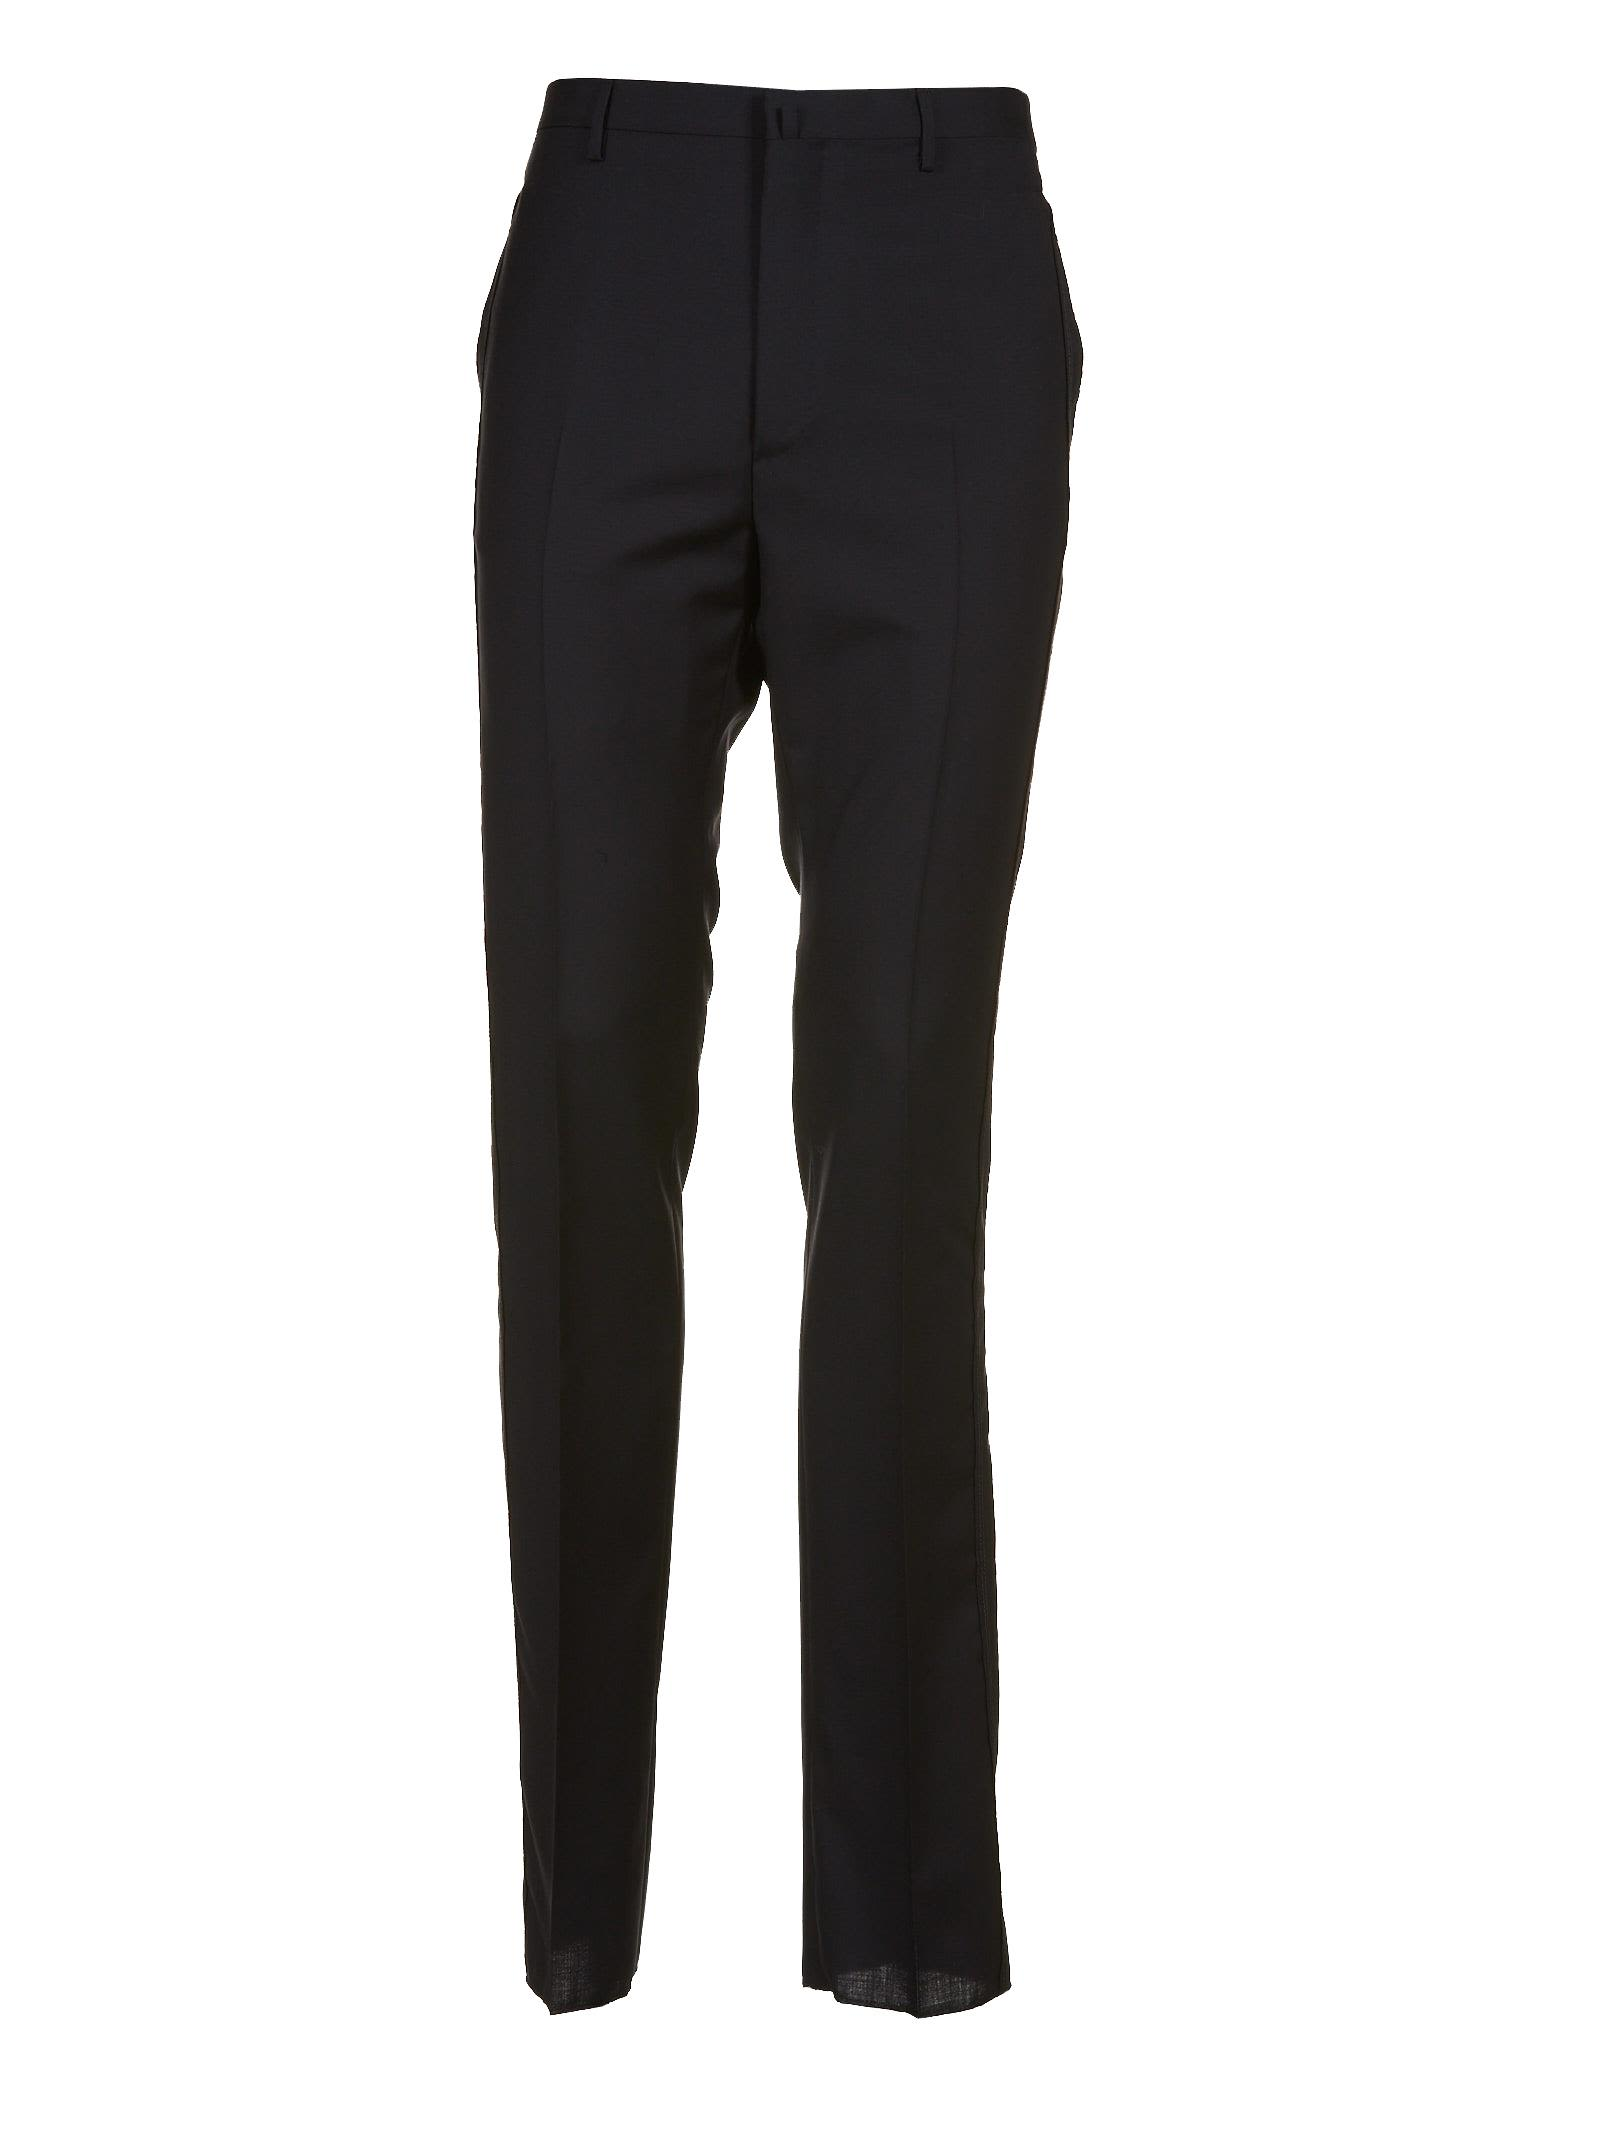 Lanvin Paris Classic Trousers